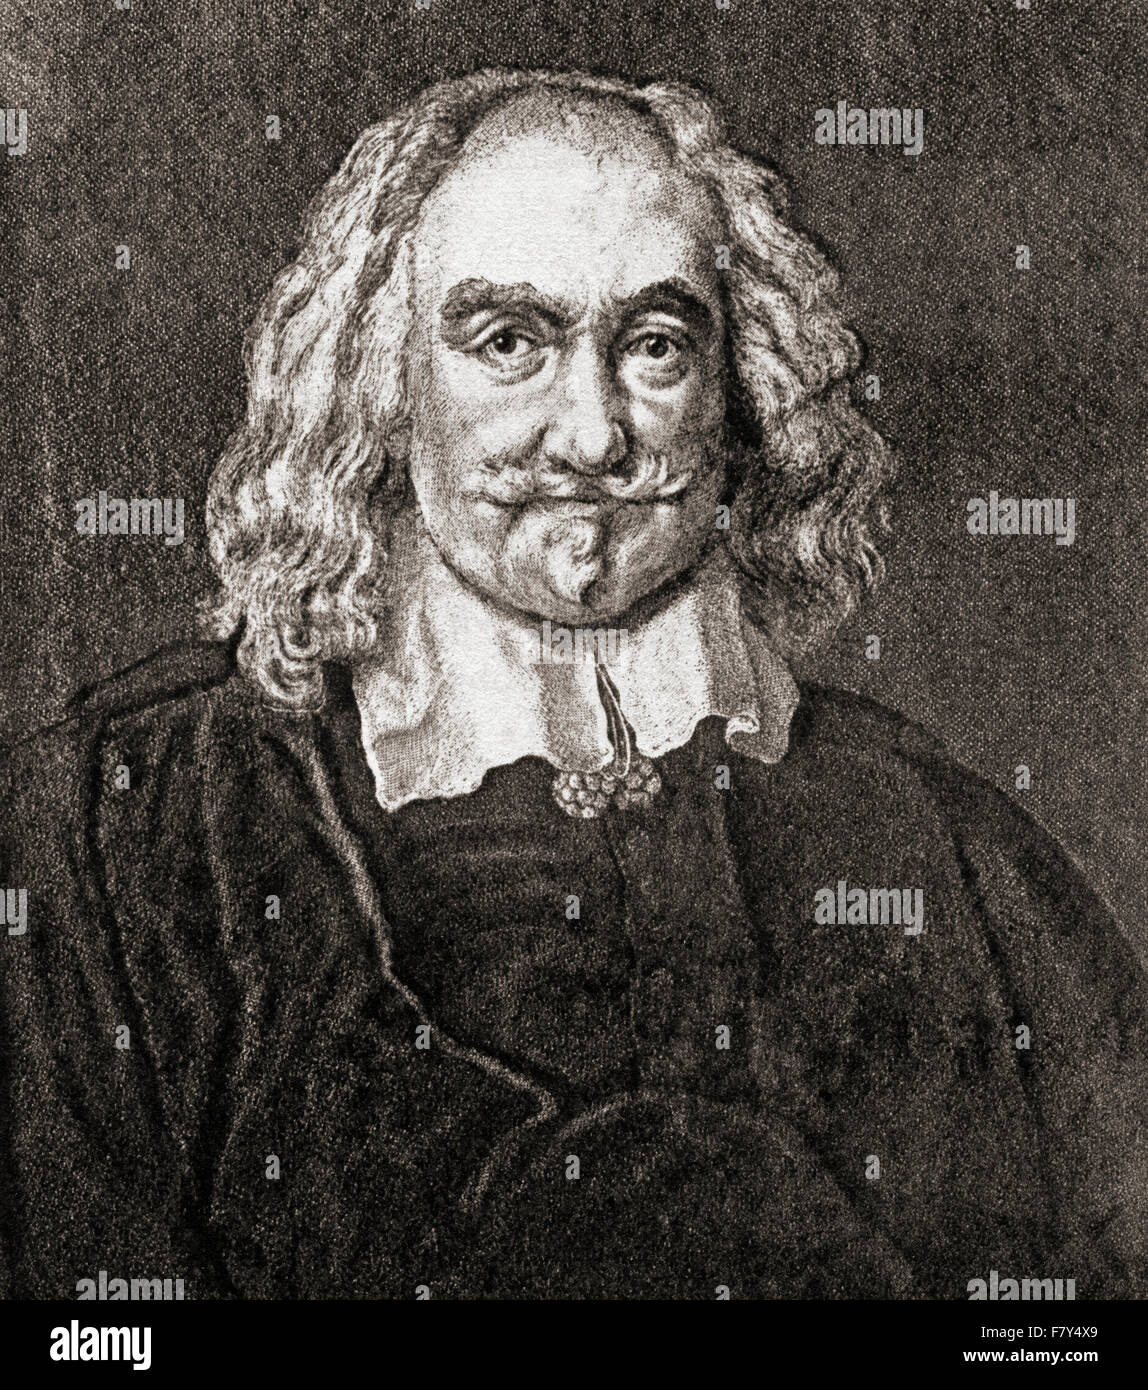 hobbes political philosophy essay View and download thomas hobbes essays machiavelli and thomas hobbes appear to recommend political actions and philosophy thomas hobbes believed that.